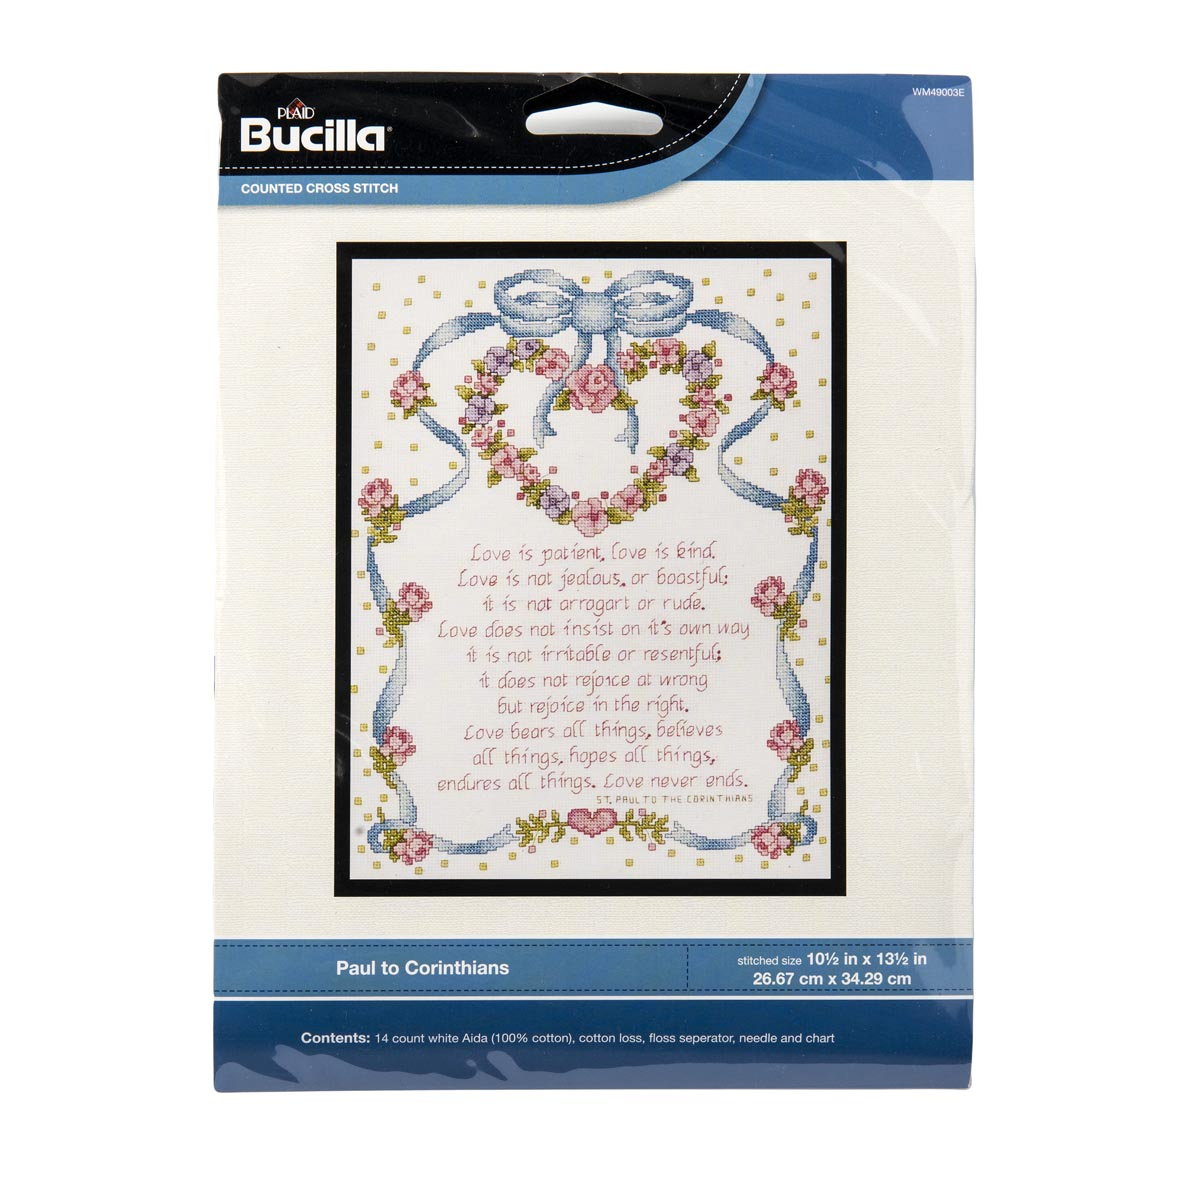 Bucilla ® Counted Cross Stitch - Picture Kits - Paul to Corinthians